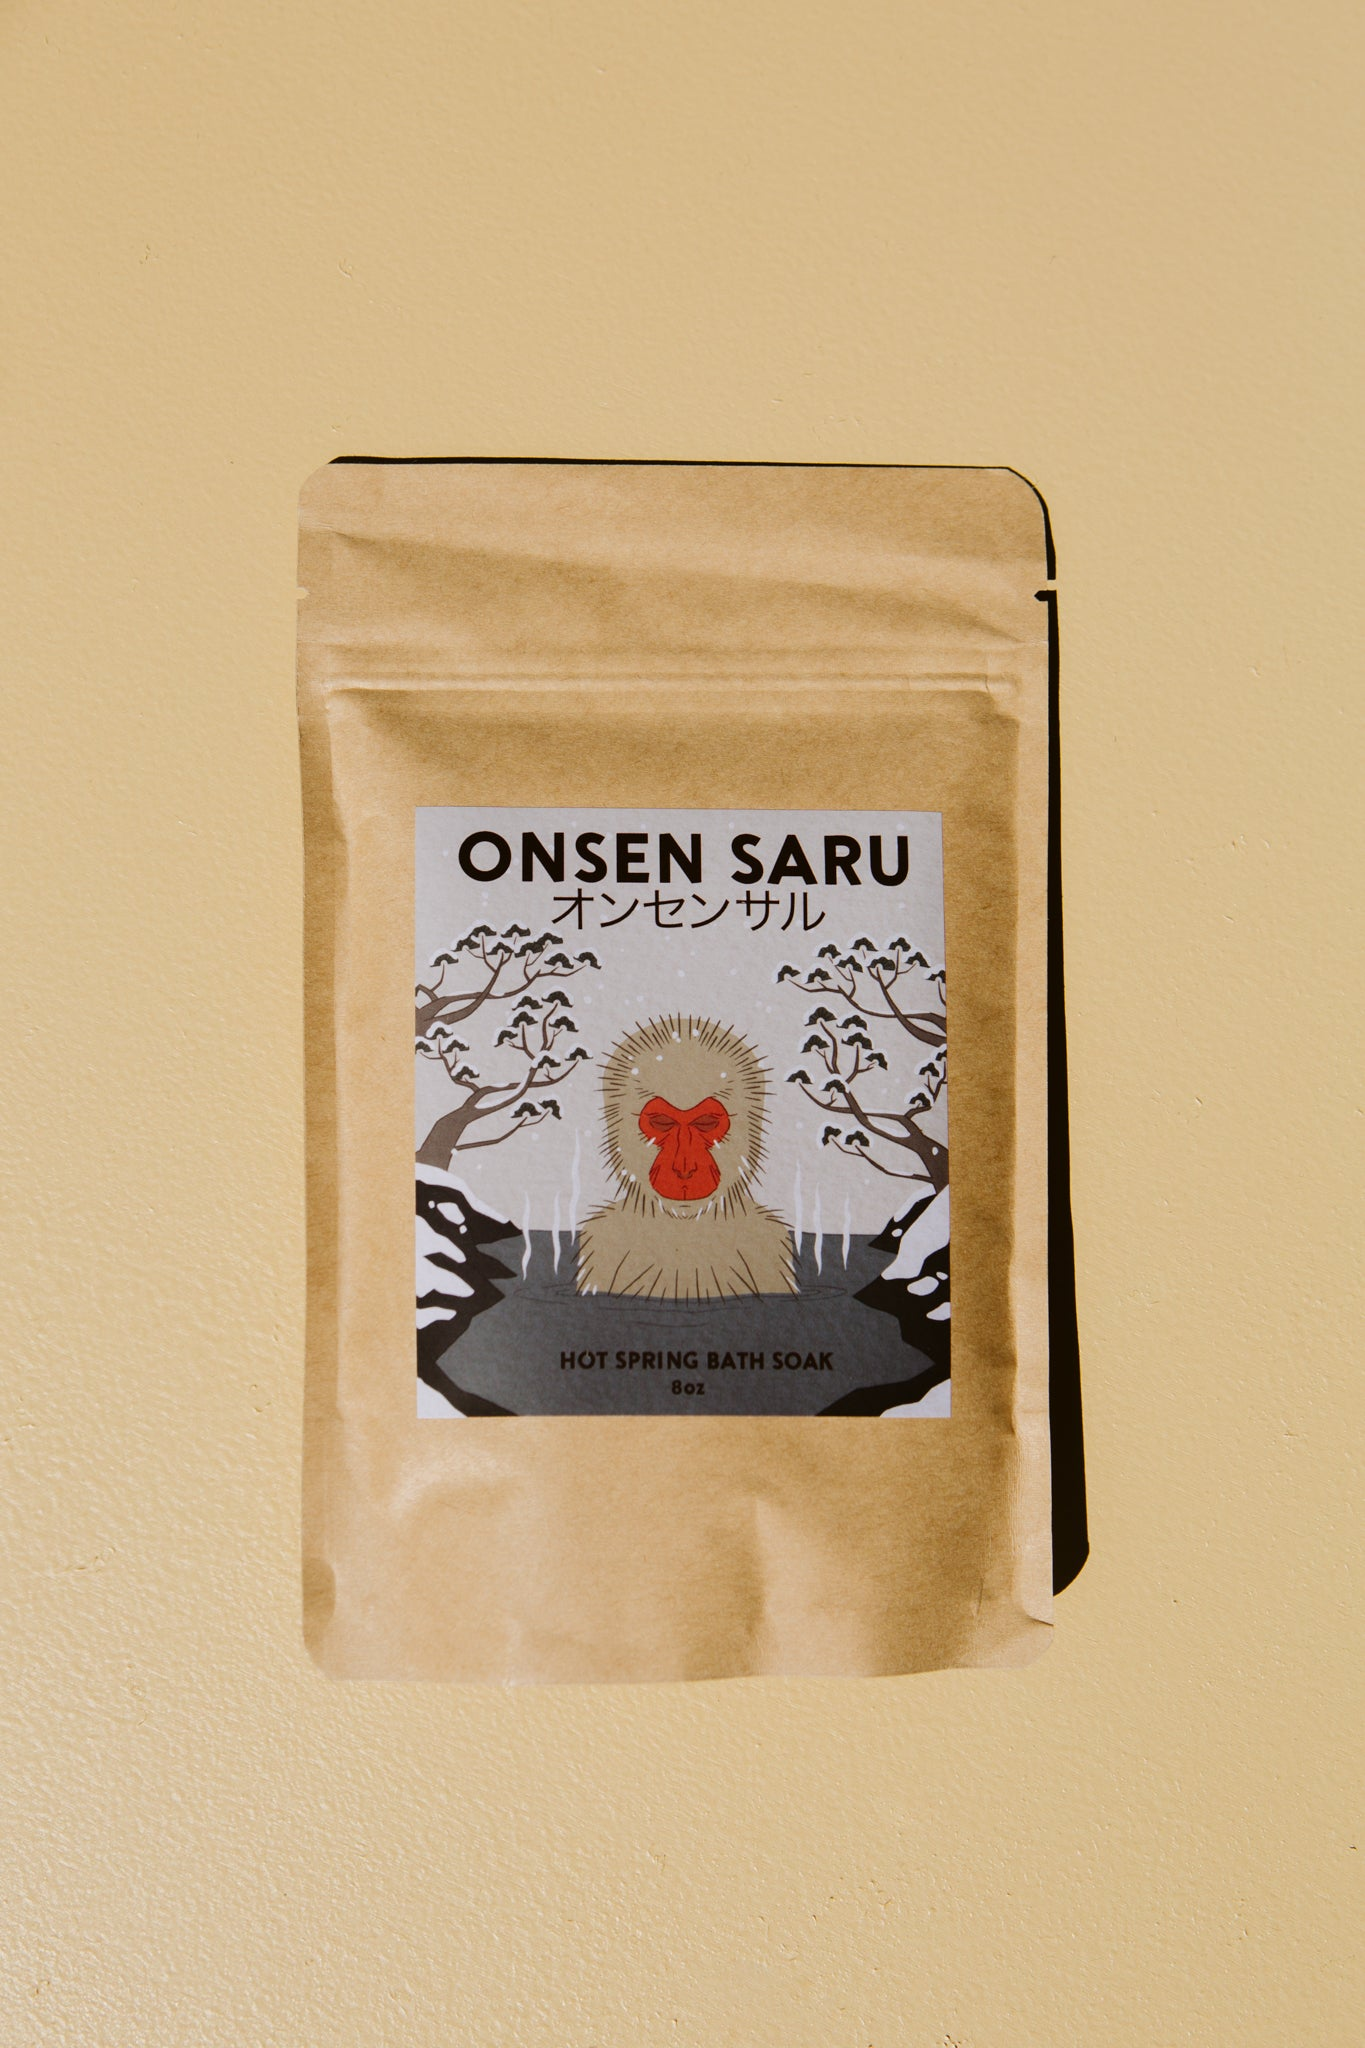 Onsen Saru—Hot Spring Bath Soak